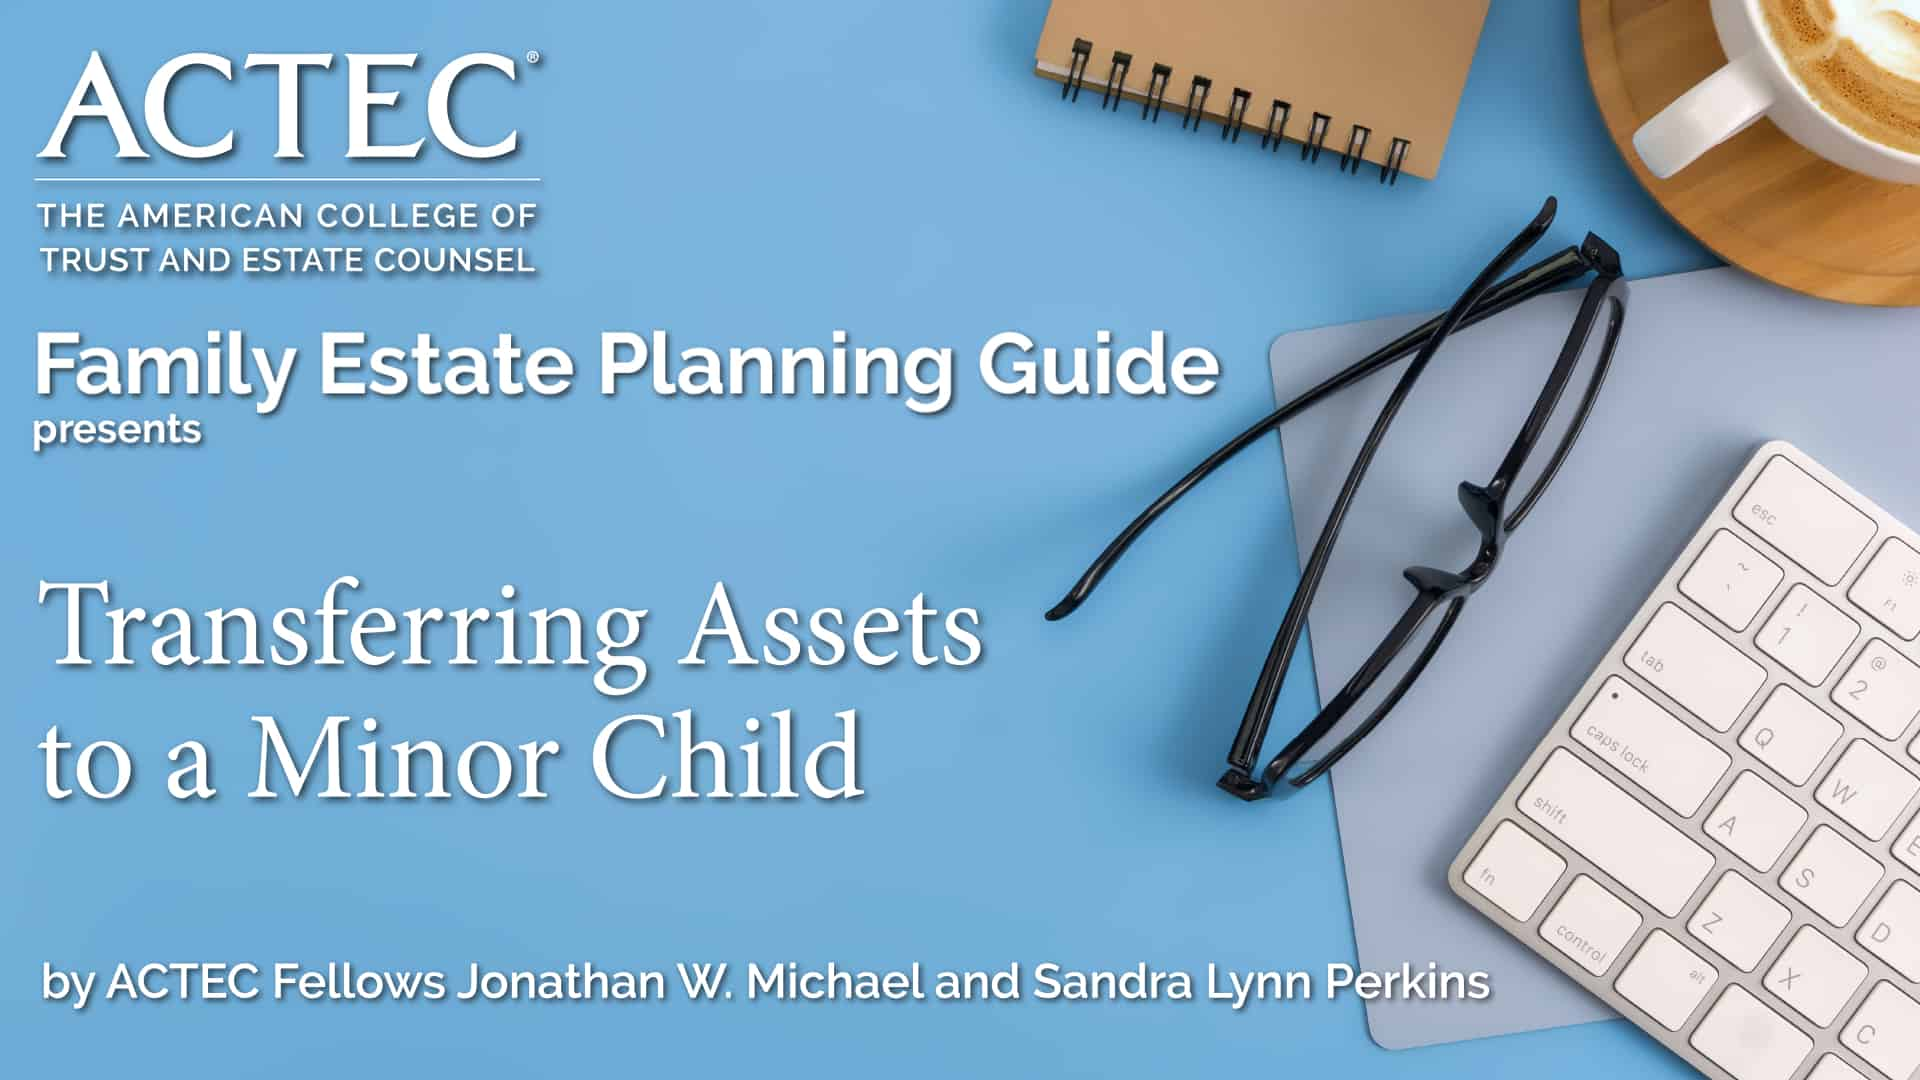 Transferring Assets to a Minor Child